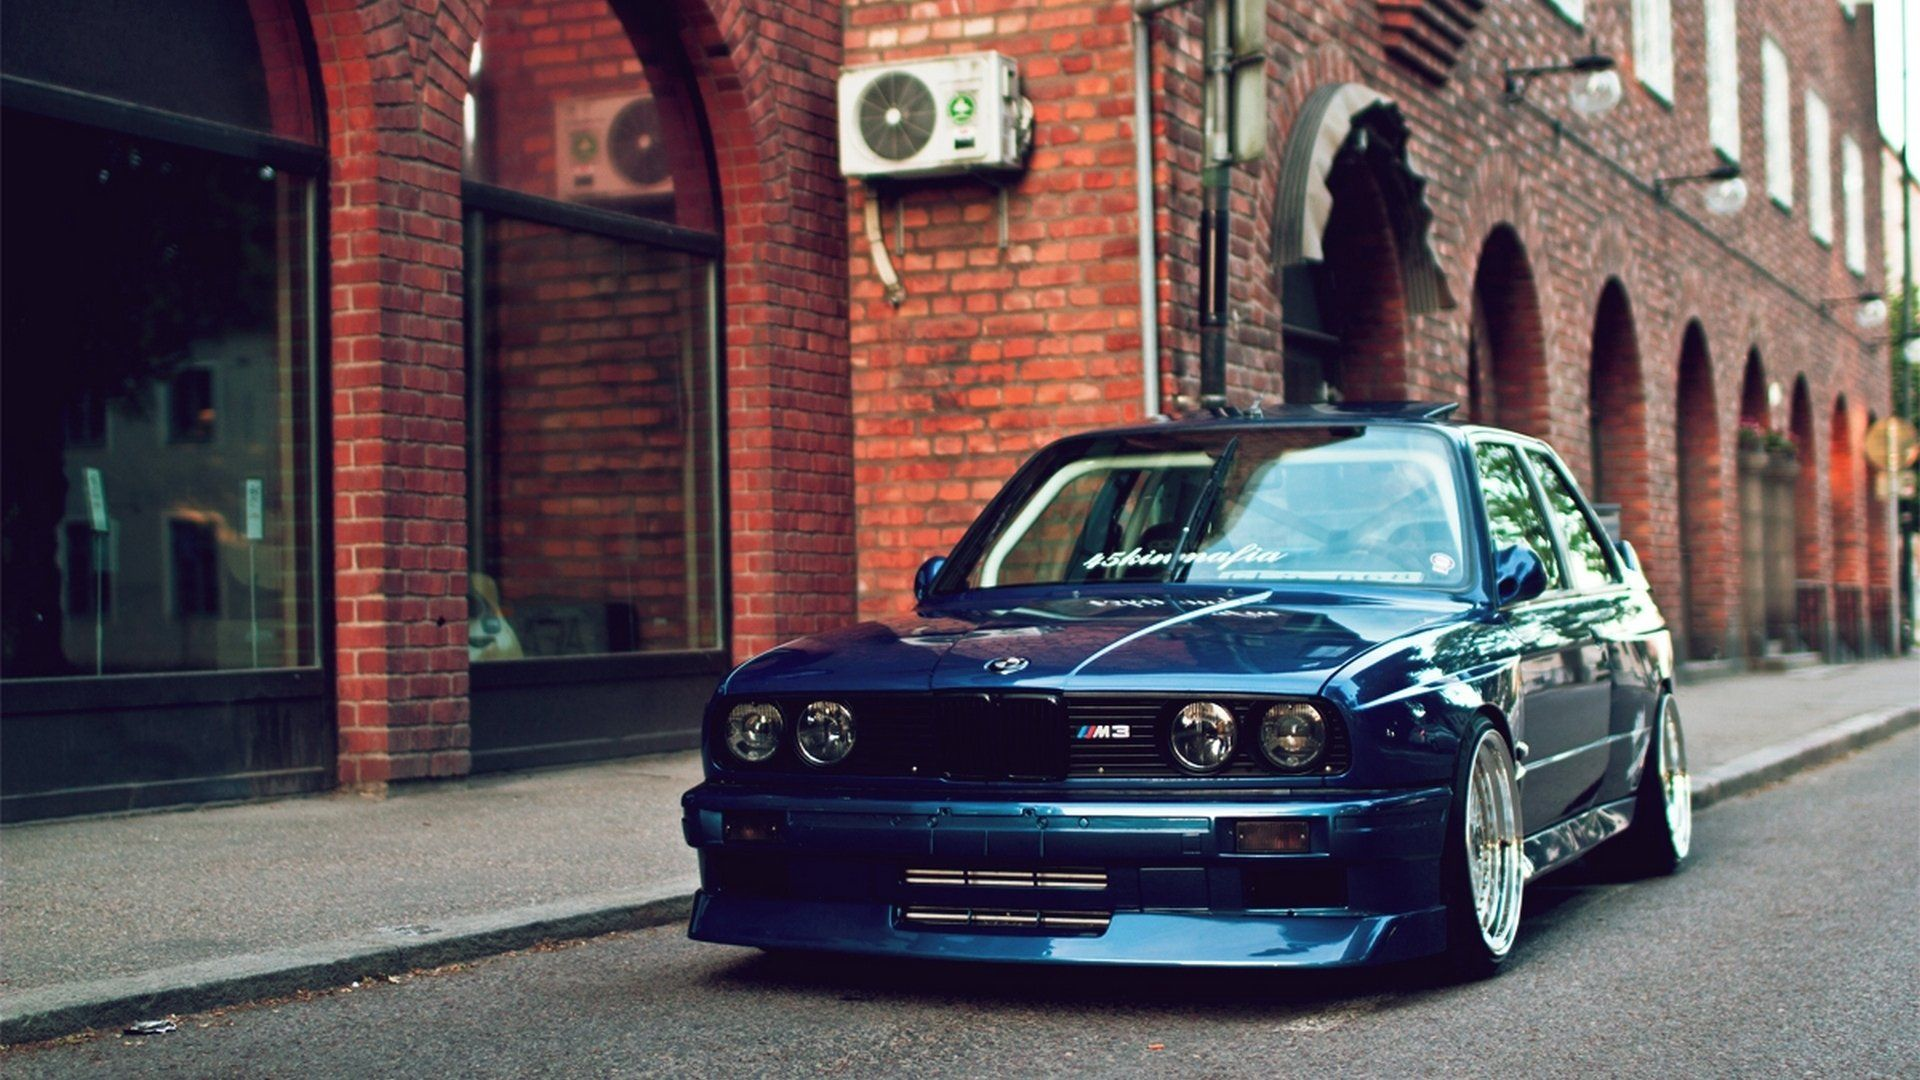 Best 10  Bmw e30 ideas on Pinterest | Bmw e30 m3, Bmw m30 and E30